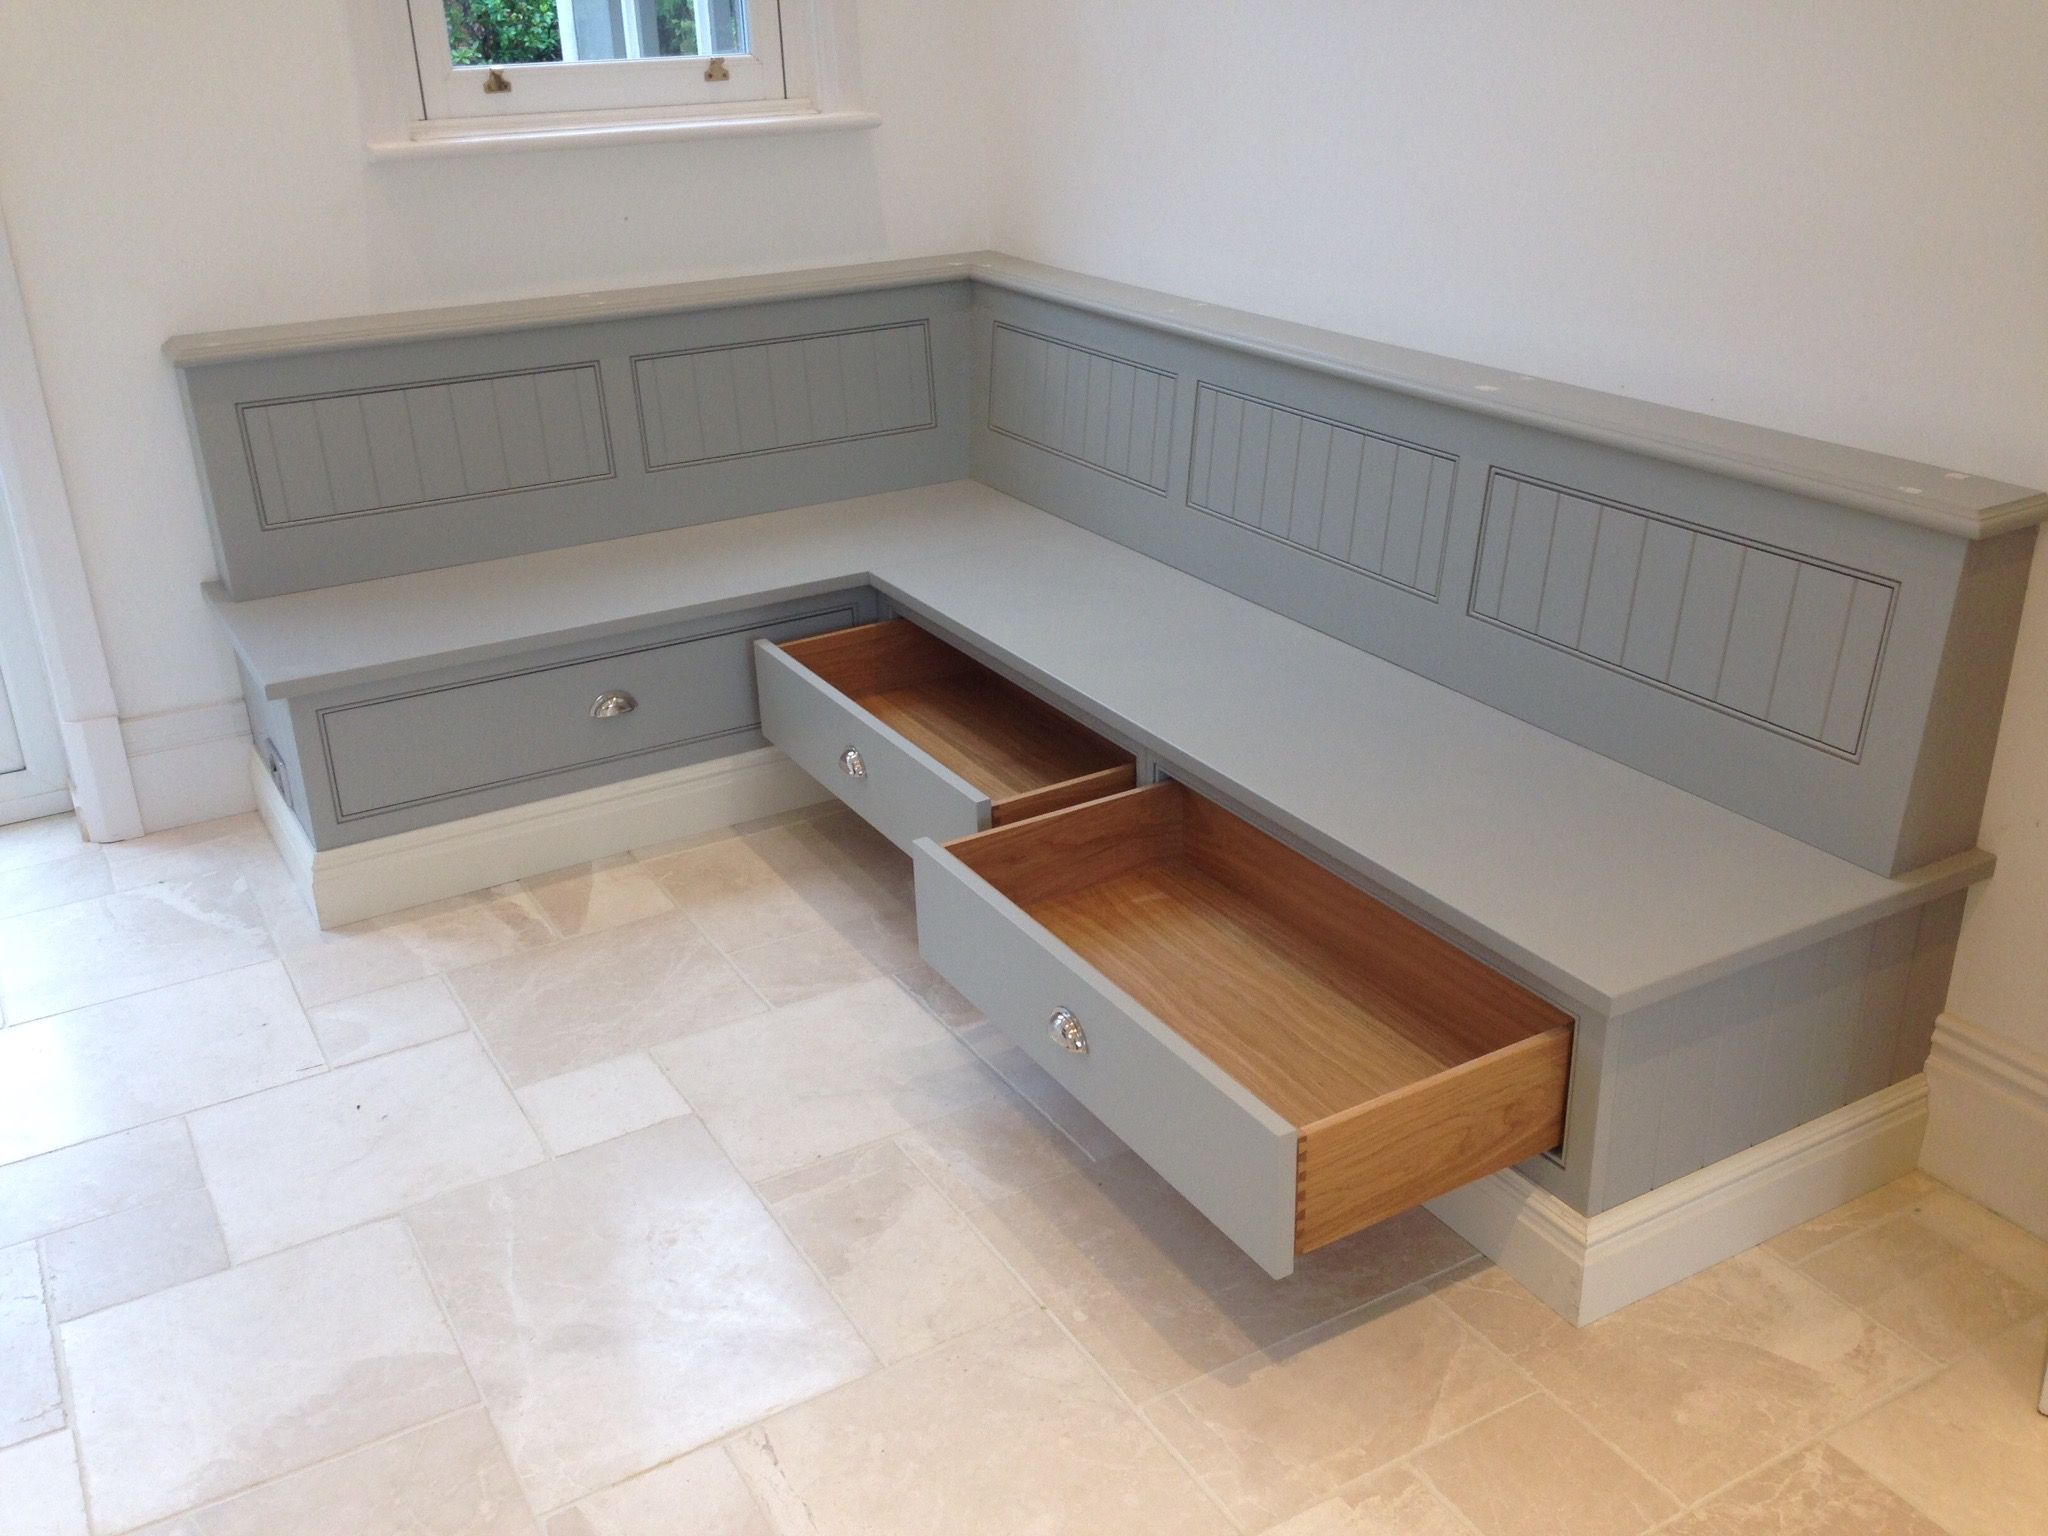 Tom Howley Bench Seat With Storage Draws More Dining Room